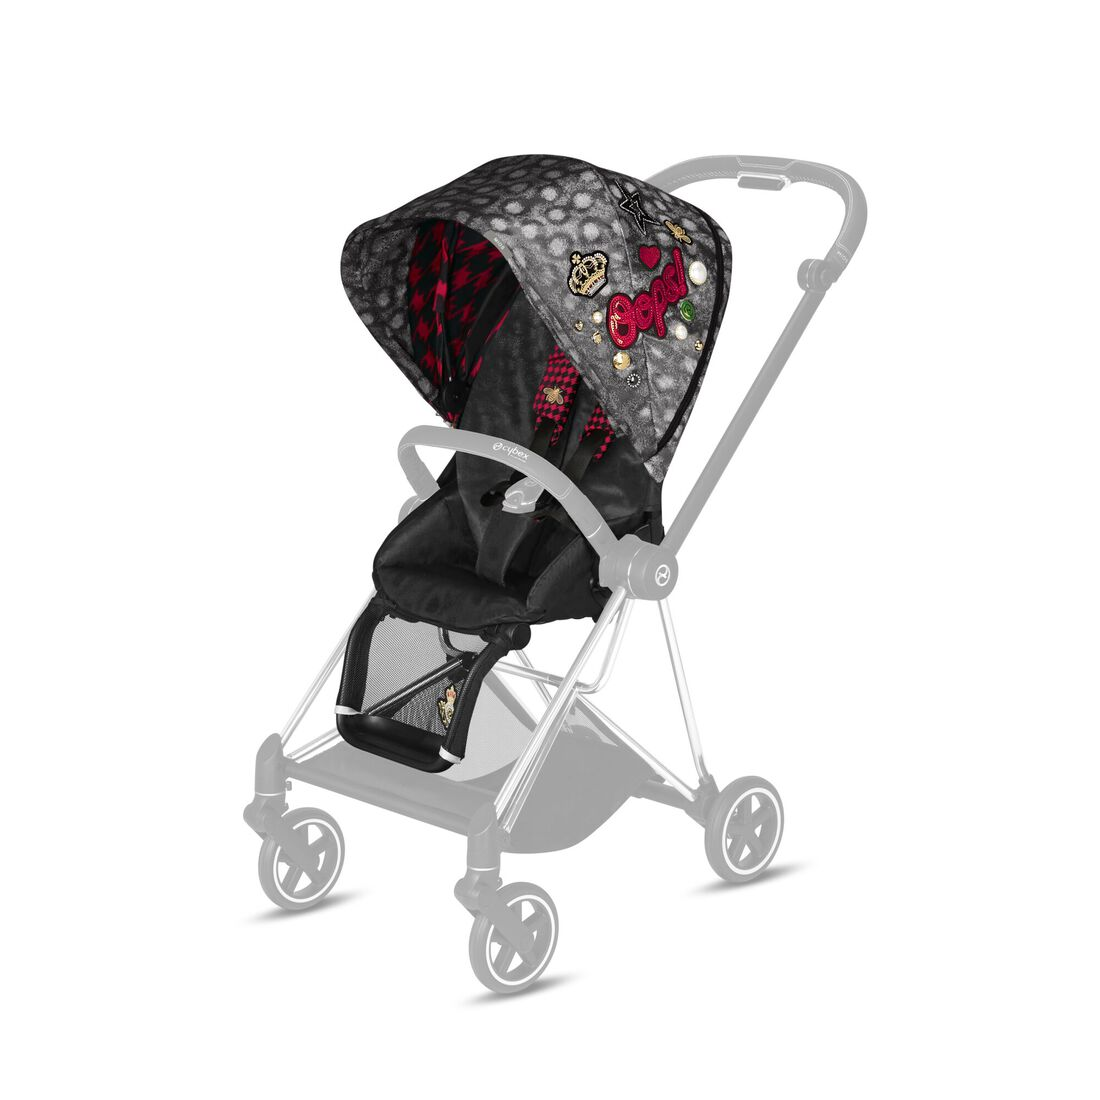 CYBEX Mios Seat Pack - Rebellious in Rebellious large image number 1